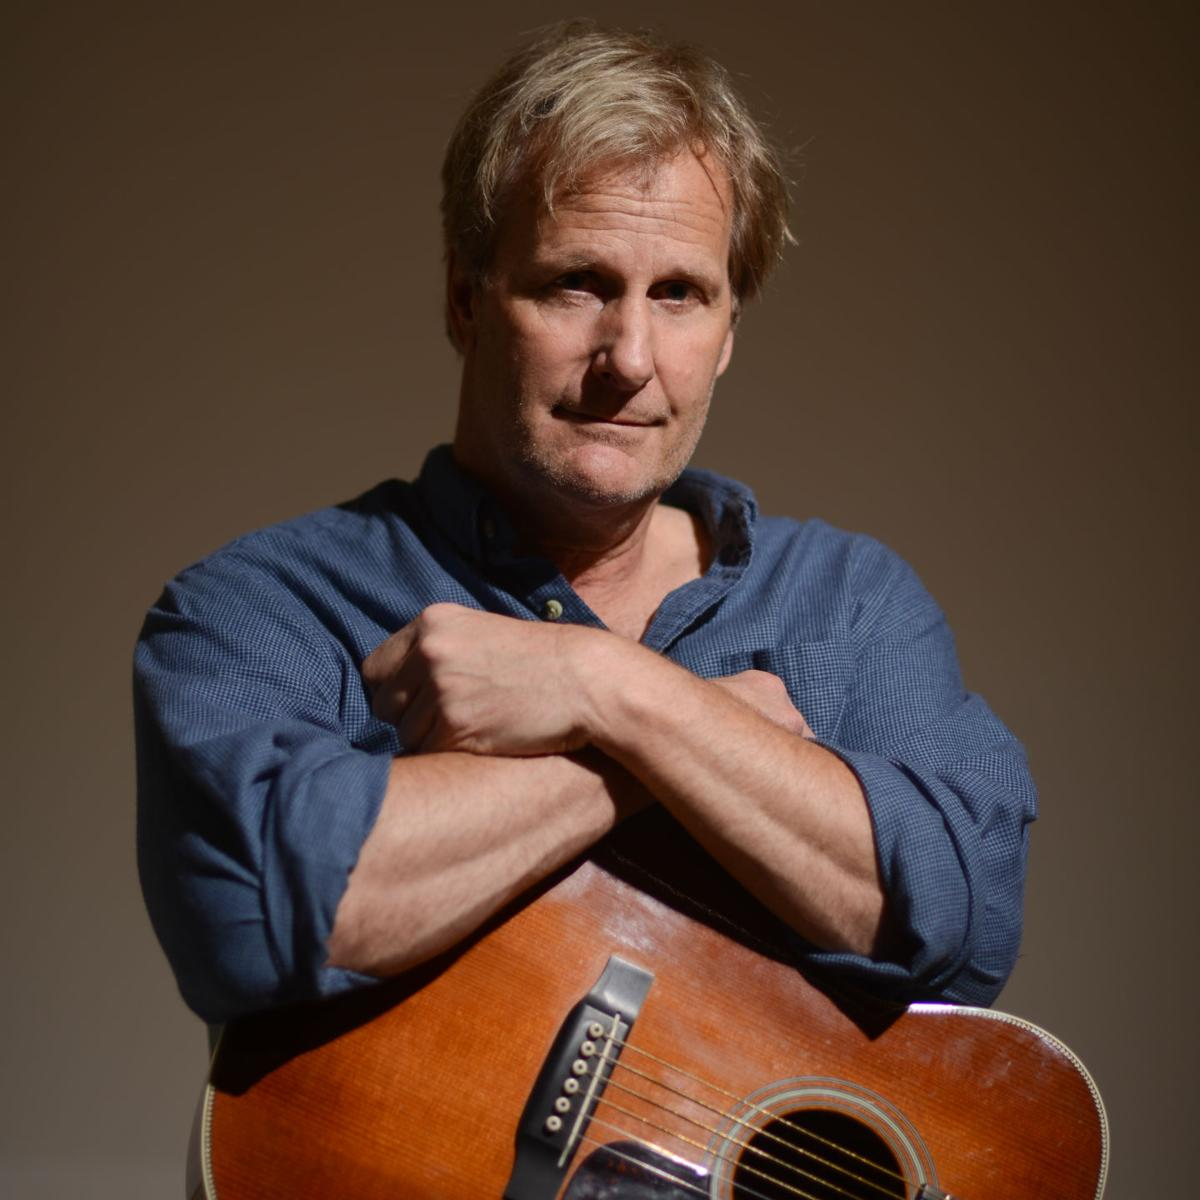 Hollywood's Jeff Daniels brings his musical talents to Stowe